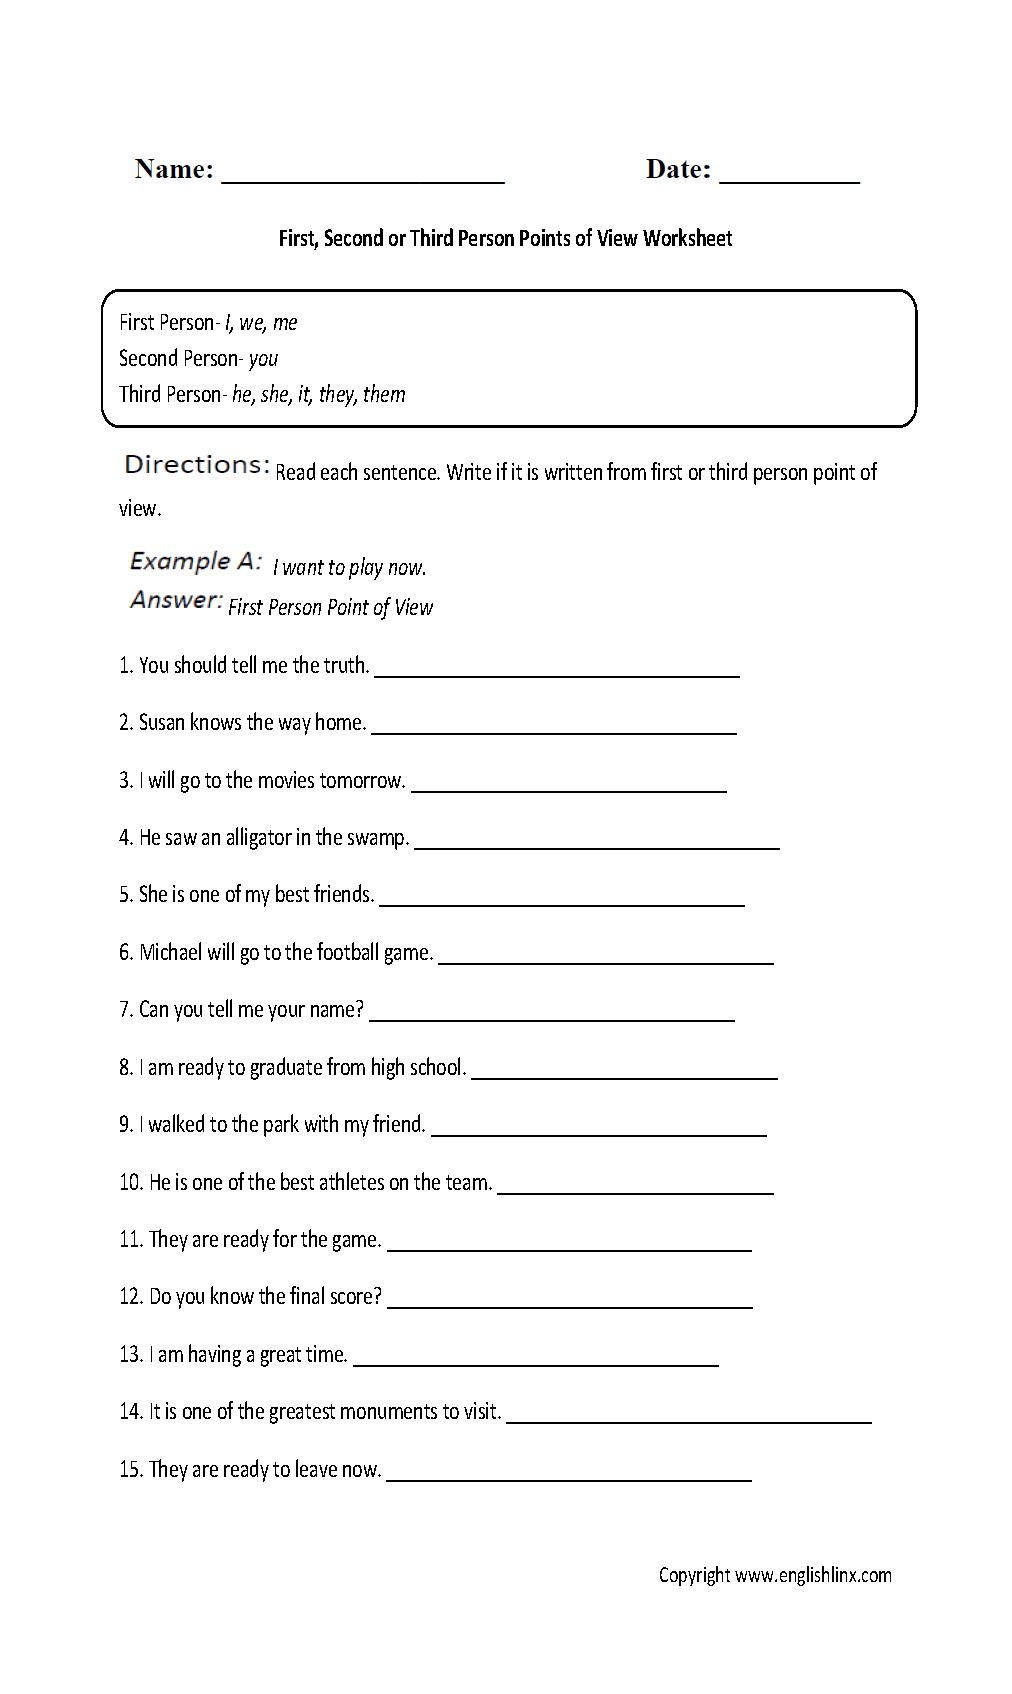 Weirdmailus  Gorgeous Englishlinxcom  Point Of View Worksheets With Outstanding Point Of View Worksheet With Nice Latin Root Words Worksheet Also D Shapes Worksheet In Addition Electric Circuits Worksheet And Irregular Preterite Worksheet As Well As Standard Deduction Worksheet Additionally Th Grade Social Studies Printable Worksheets From Englishlinxcom With Weirdmailus  Outstanding Englishlinxcom  Point Of View Worksheets With Nice Point Of View Worksheet And Gorgeous Latin Root Words Worksheet Also D Shapes Worksheet In Addition Electric Circuits Worksheet From Englishlinxcom